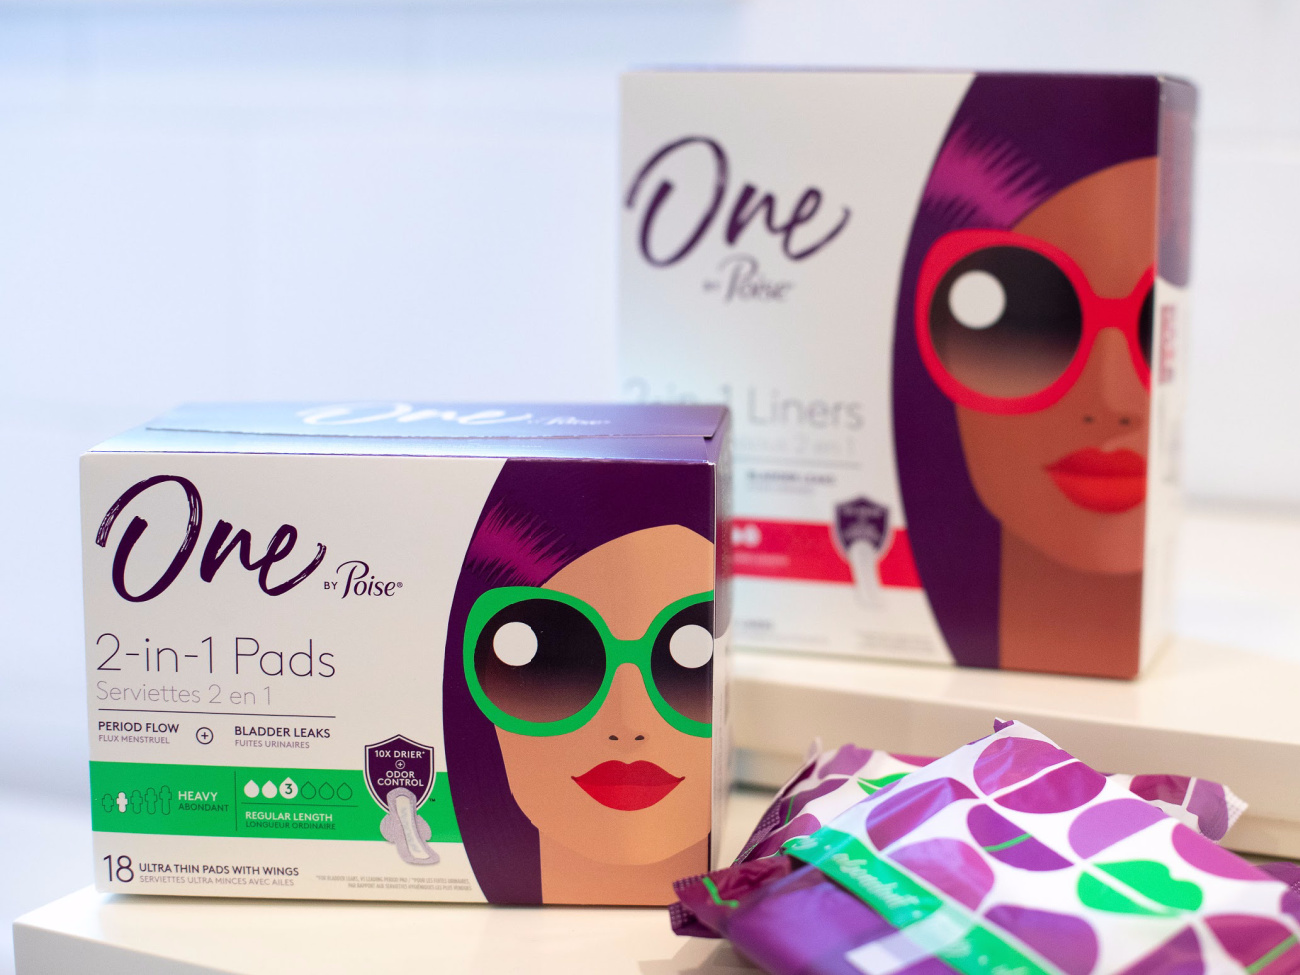 New One By Poise® Handles Your Period Weeks AND Bladder Leaks - Try Them Now And Save BIG At Publix! on I Heart Publix 1